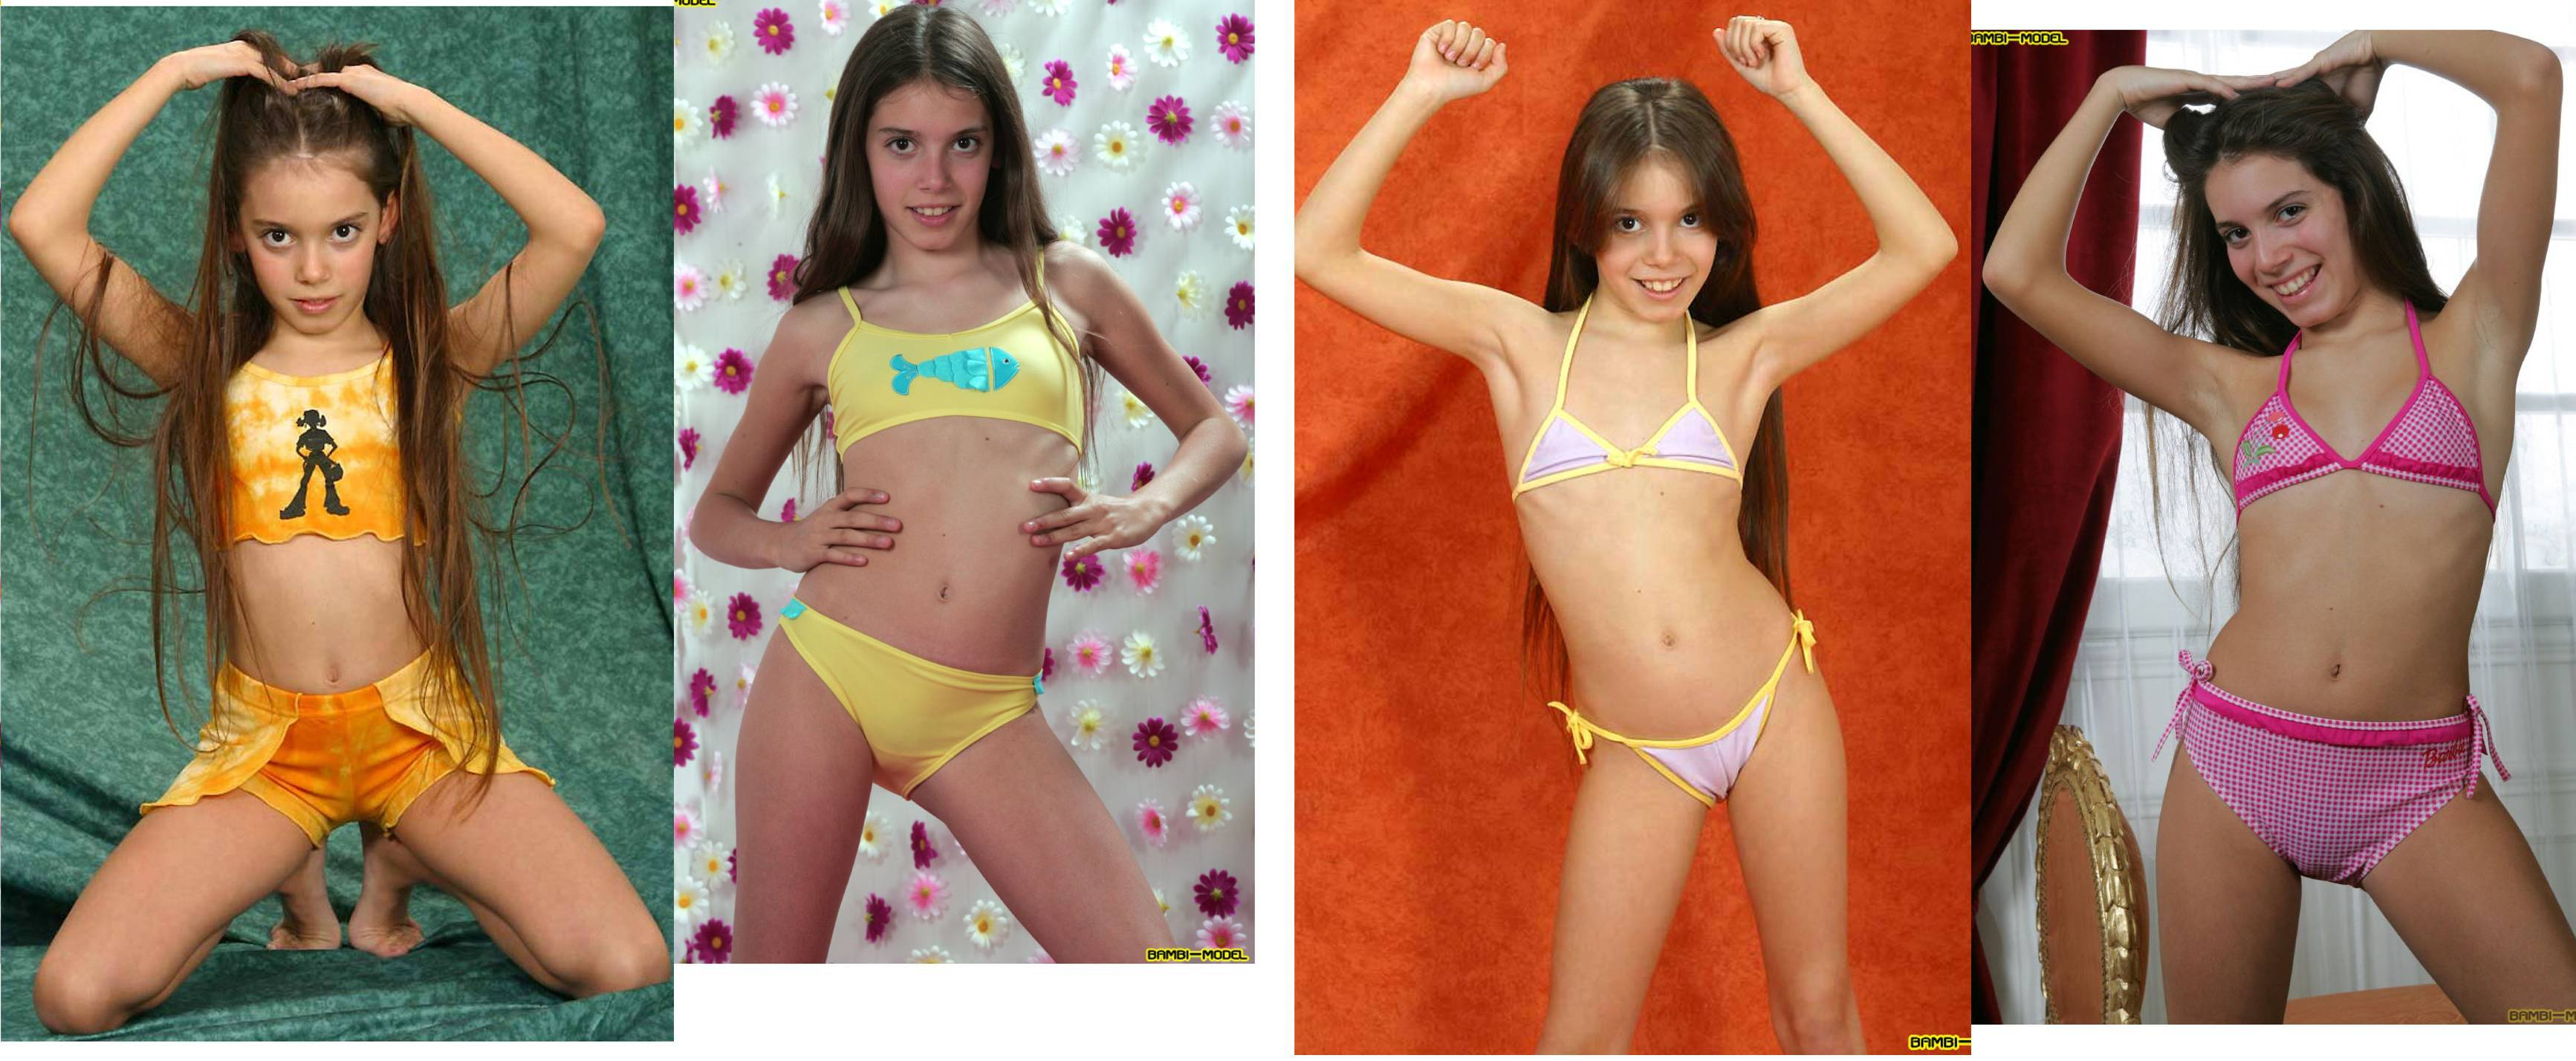 naked girl time lapse Bambi-Model - professional modeling photography through the years - 04 - 05  ...